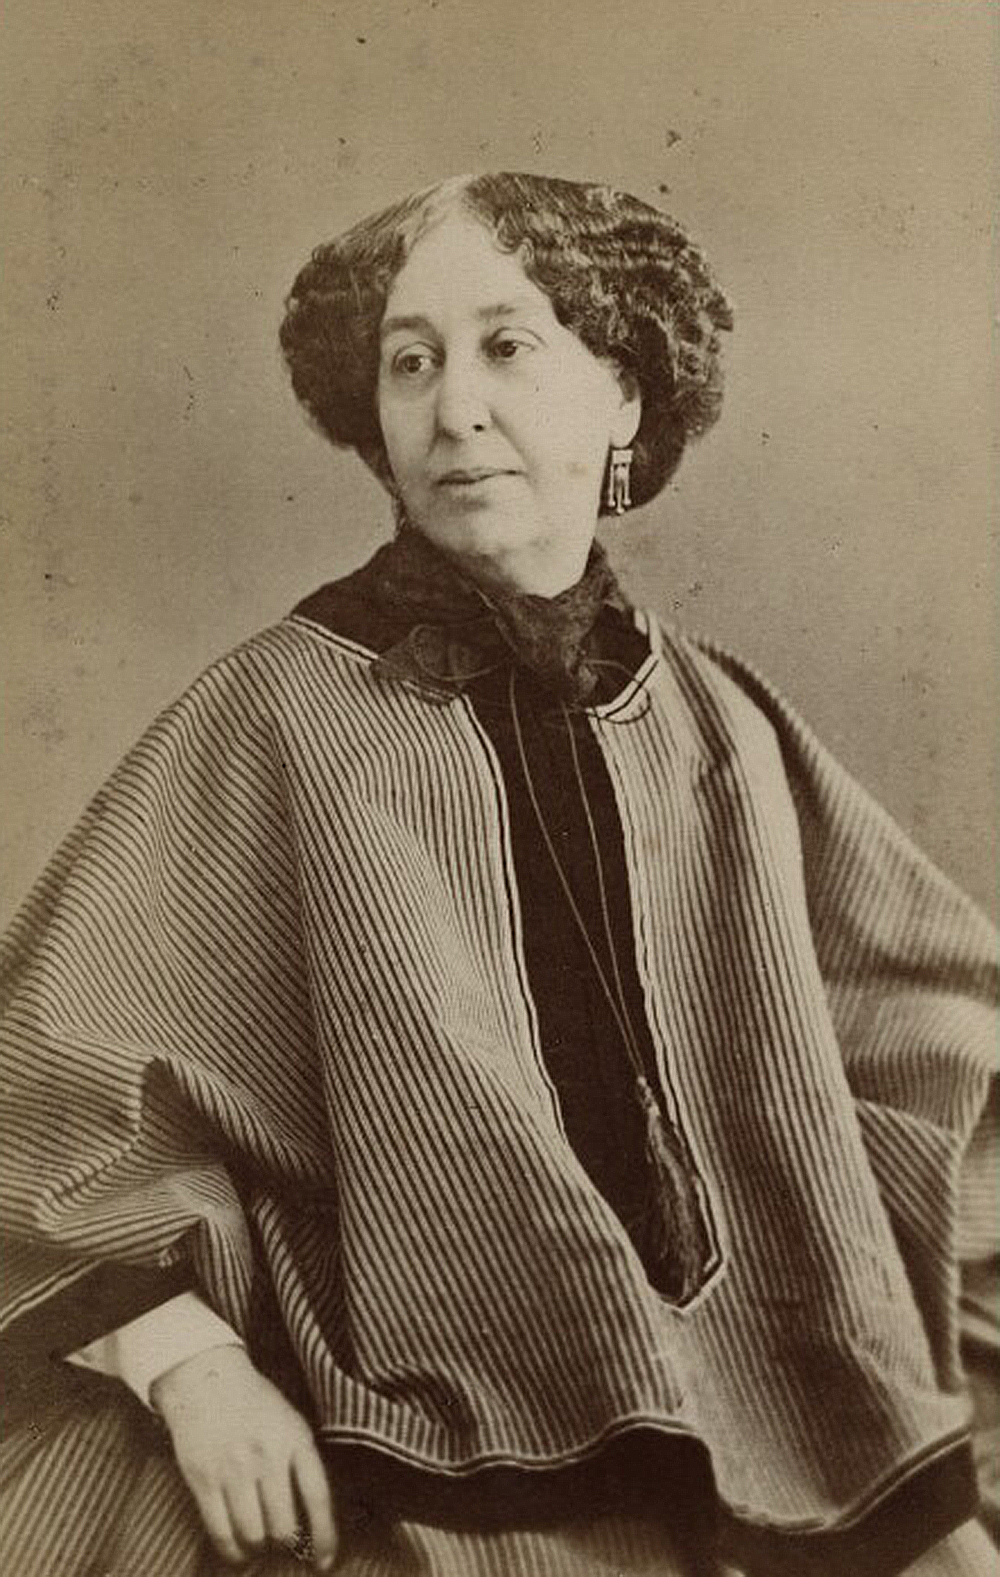 George Sand, 1866. Photograph by Nadar. National Portrait Gallery.